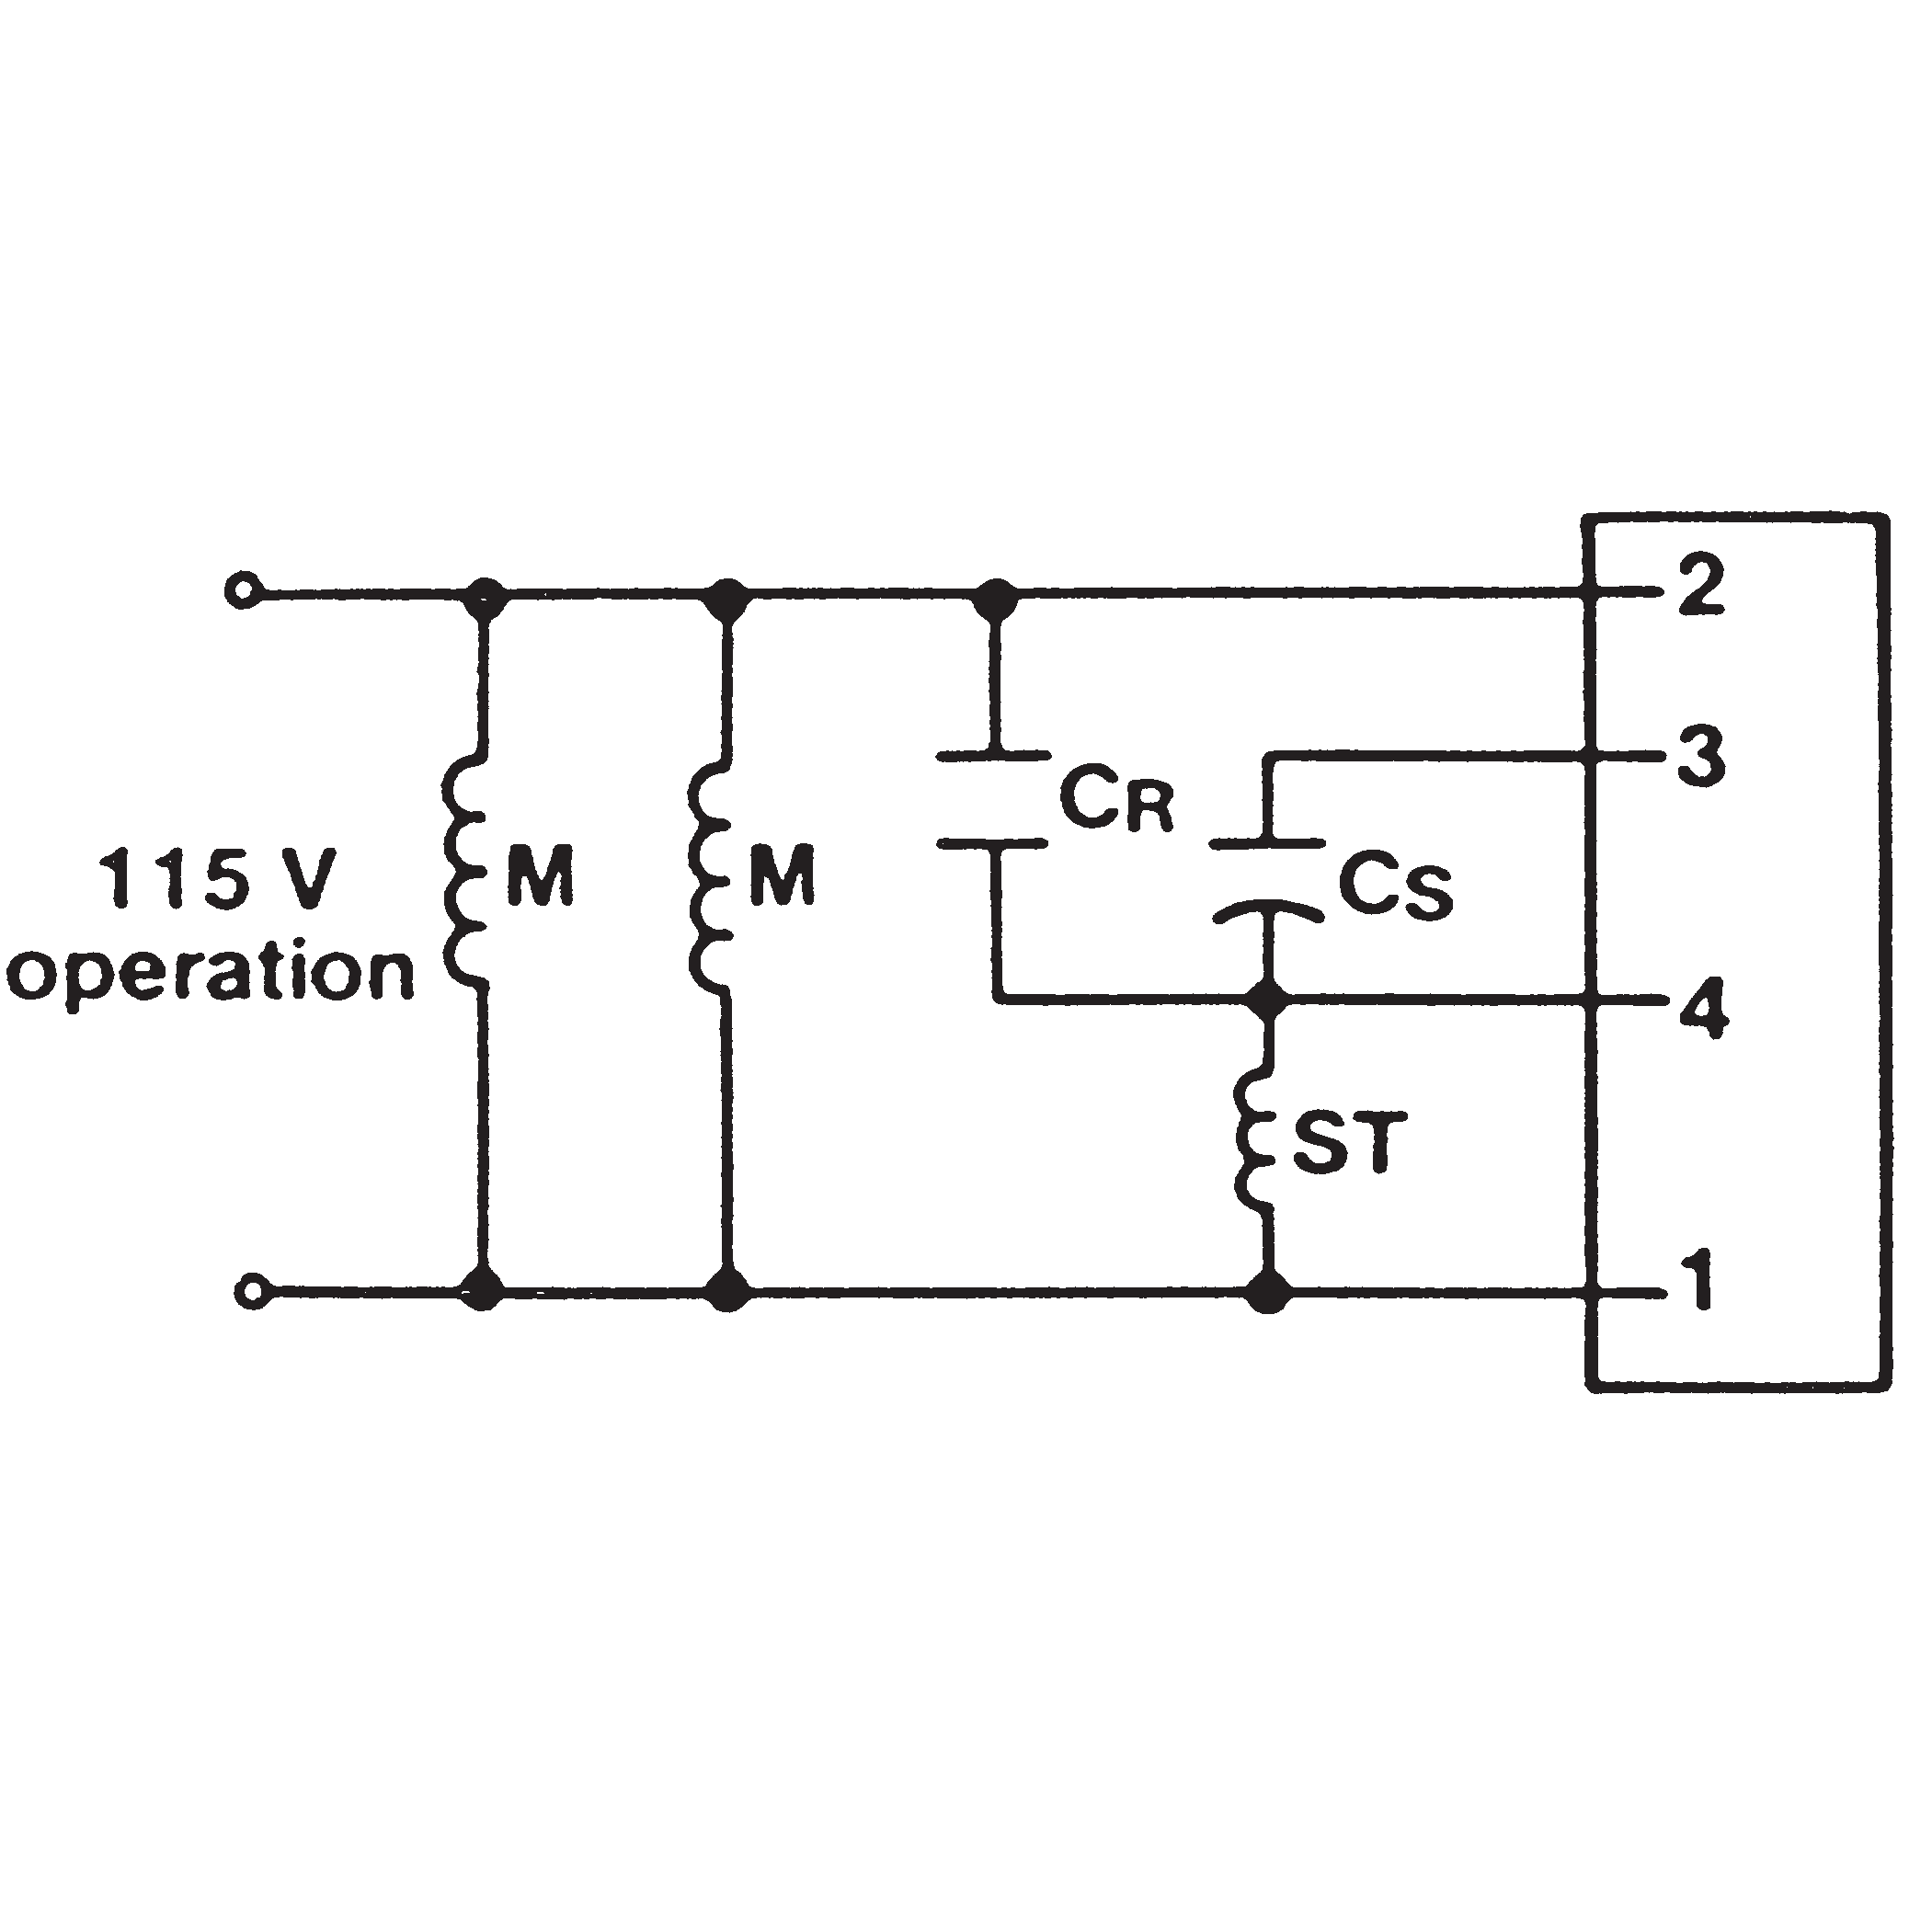 Sinpac Switch Wiring Diagram from www.witmermotorservice.com